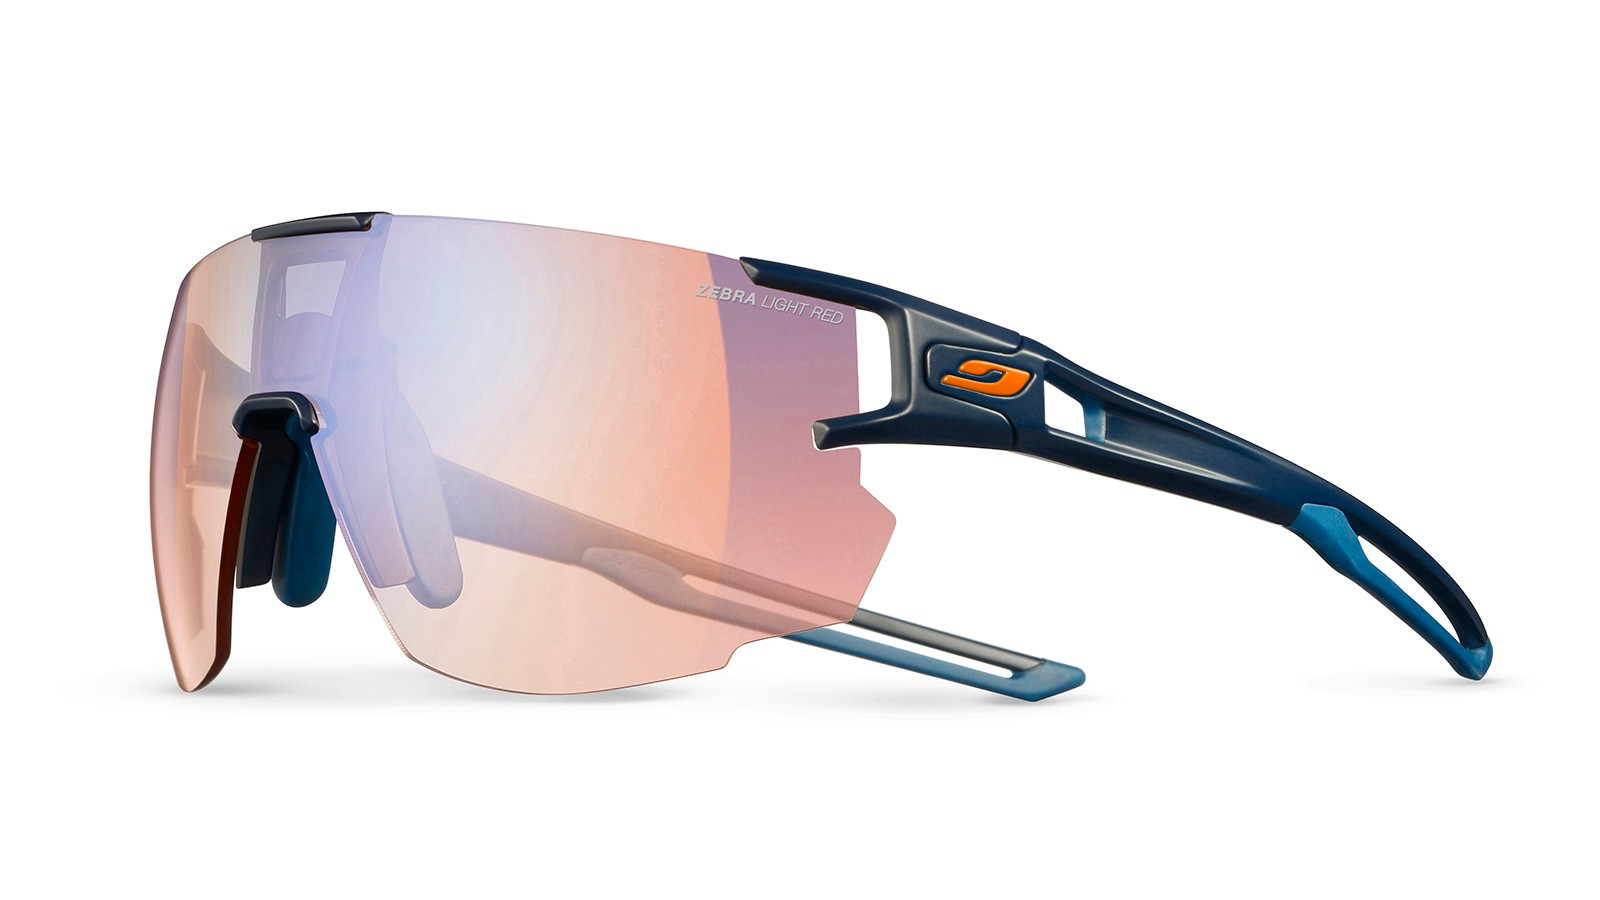 Julbo's Aerospeed sunglasses, with its Reactiv Photochromic lens, are perfect for changing light conditions